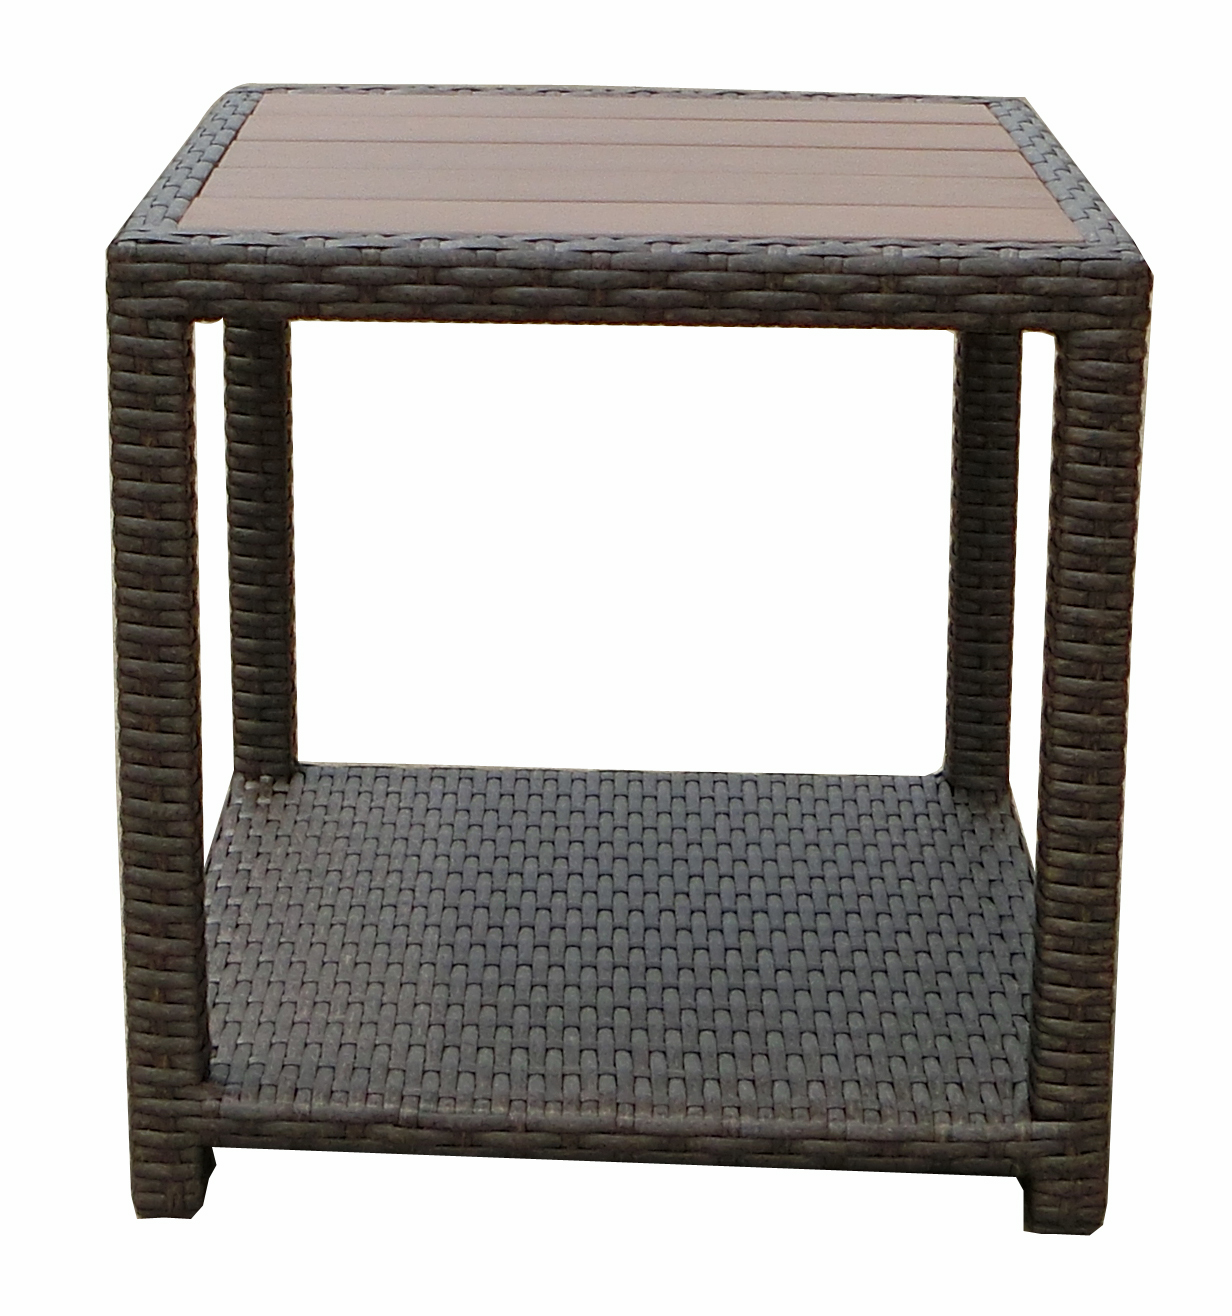 JJ Designs SB-3775-14 South Beach Wicker Patio End Table